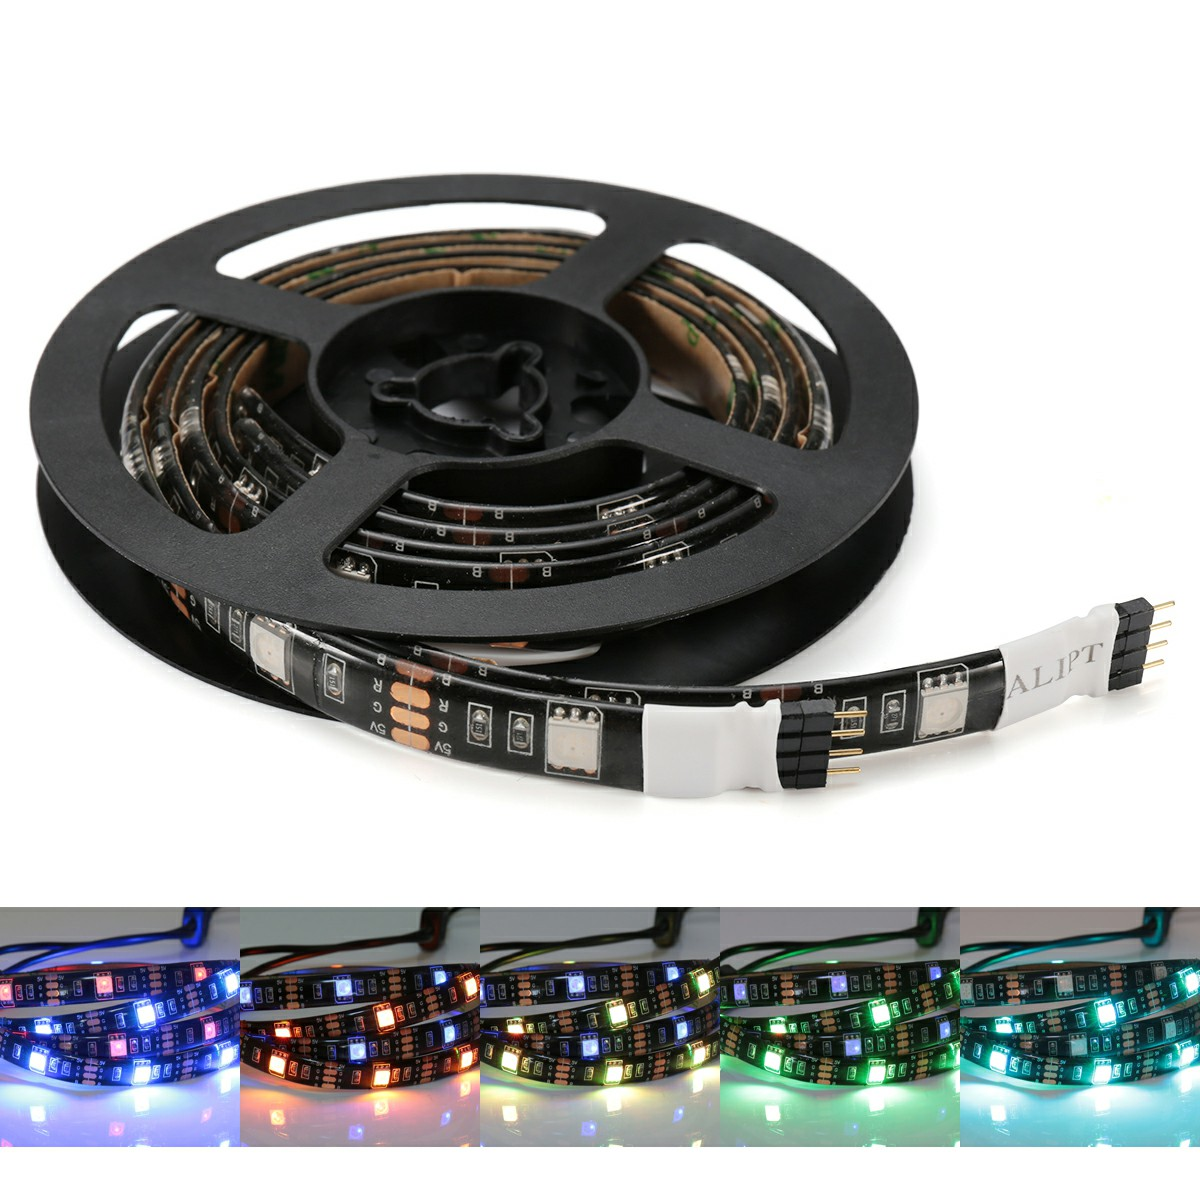 2pcs 50cm RGB 5V USB LED Lights Strip 5050 RGB Waterproof Light Band for PS4 PC TV